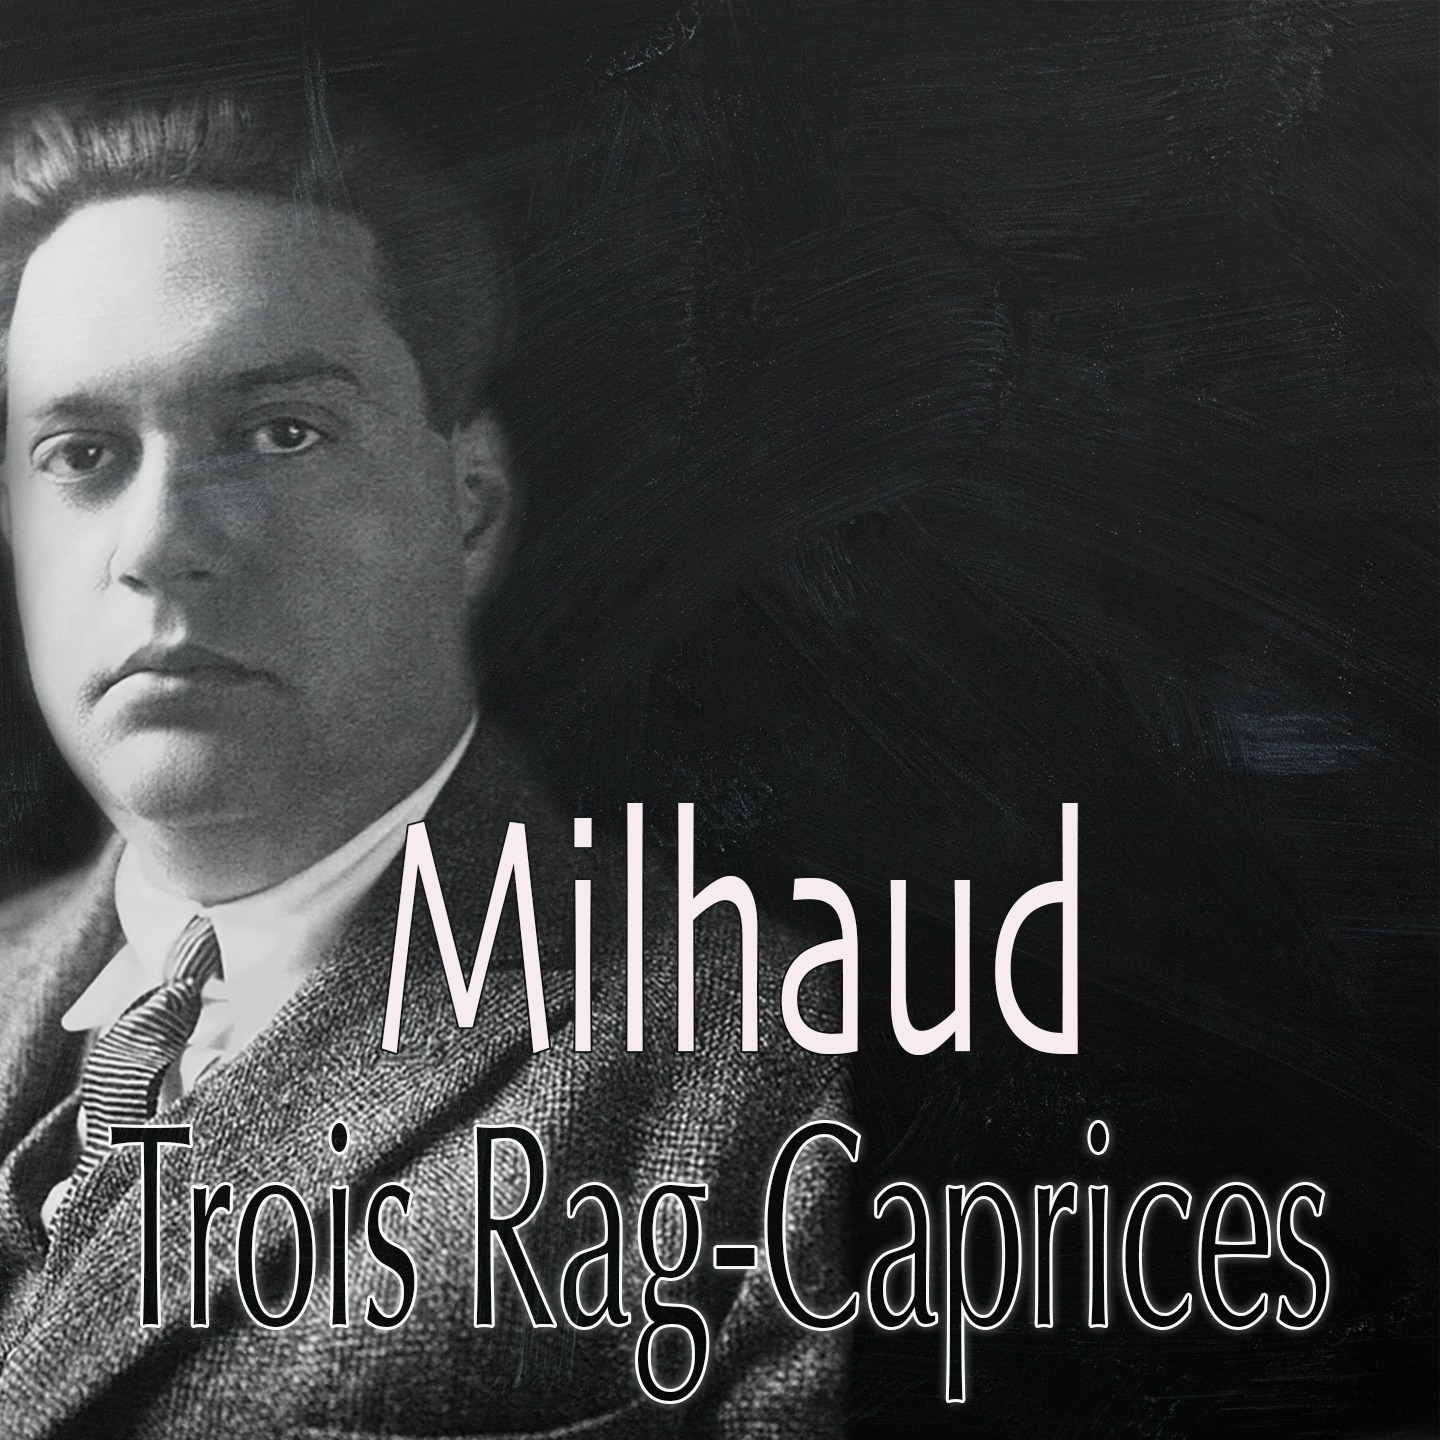 Milhaud: 3 Rag-caprices